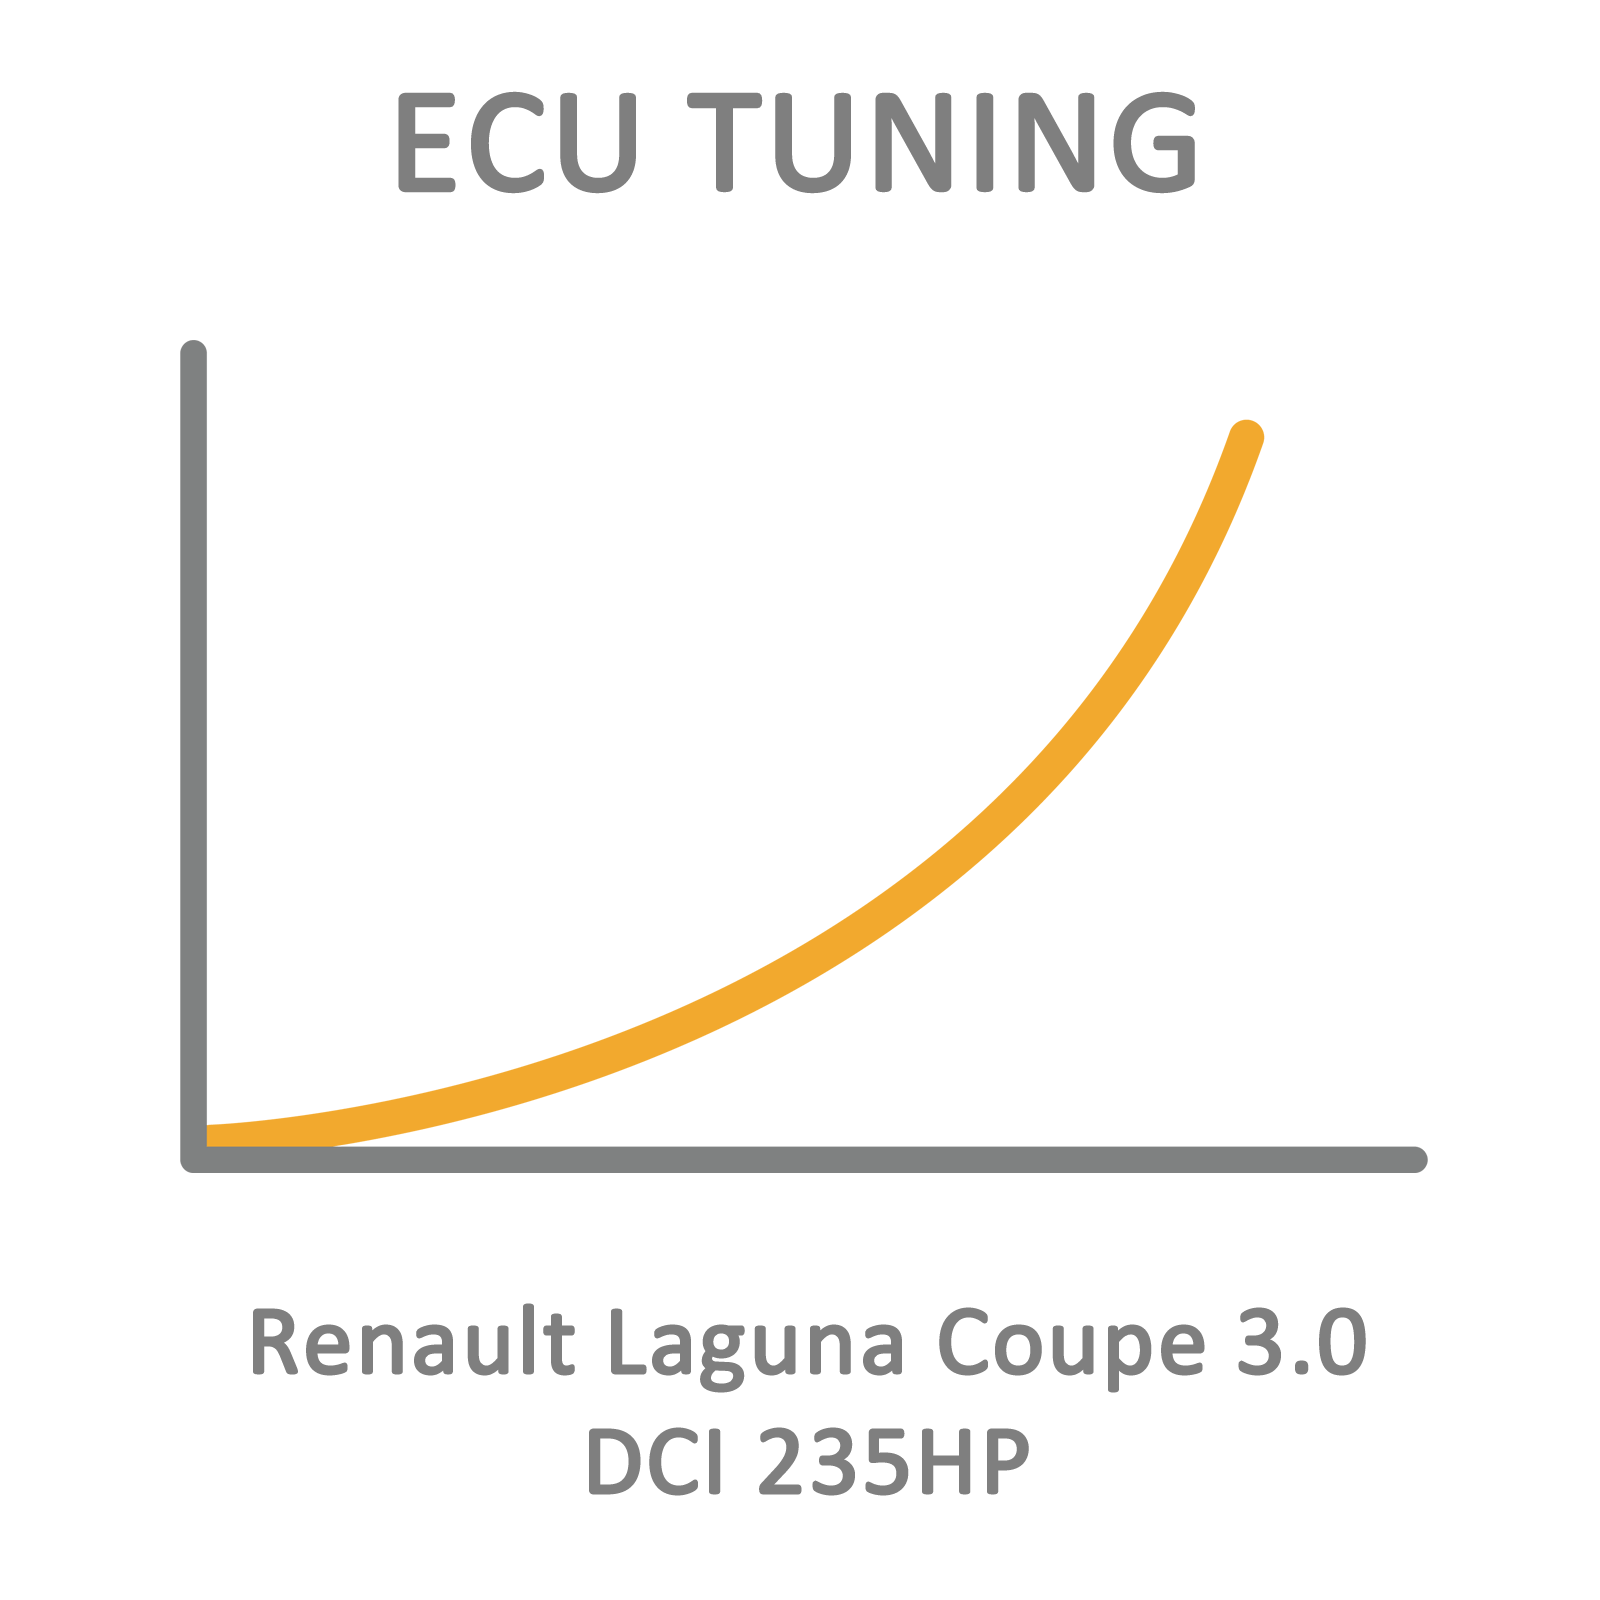 Renault Laguna Coupe 3.0 DCI 235HP ECU Tuning Remapping